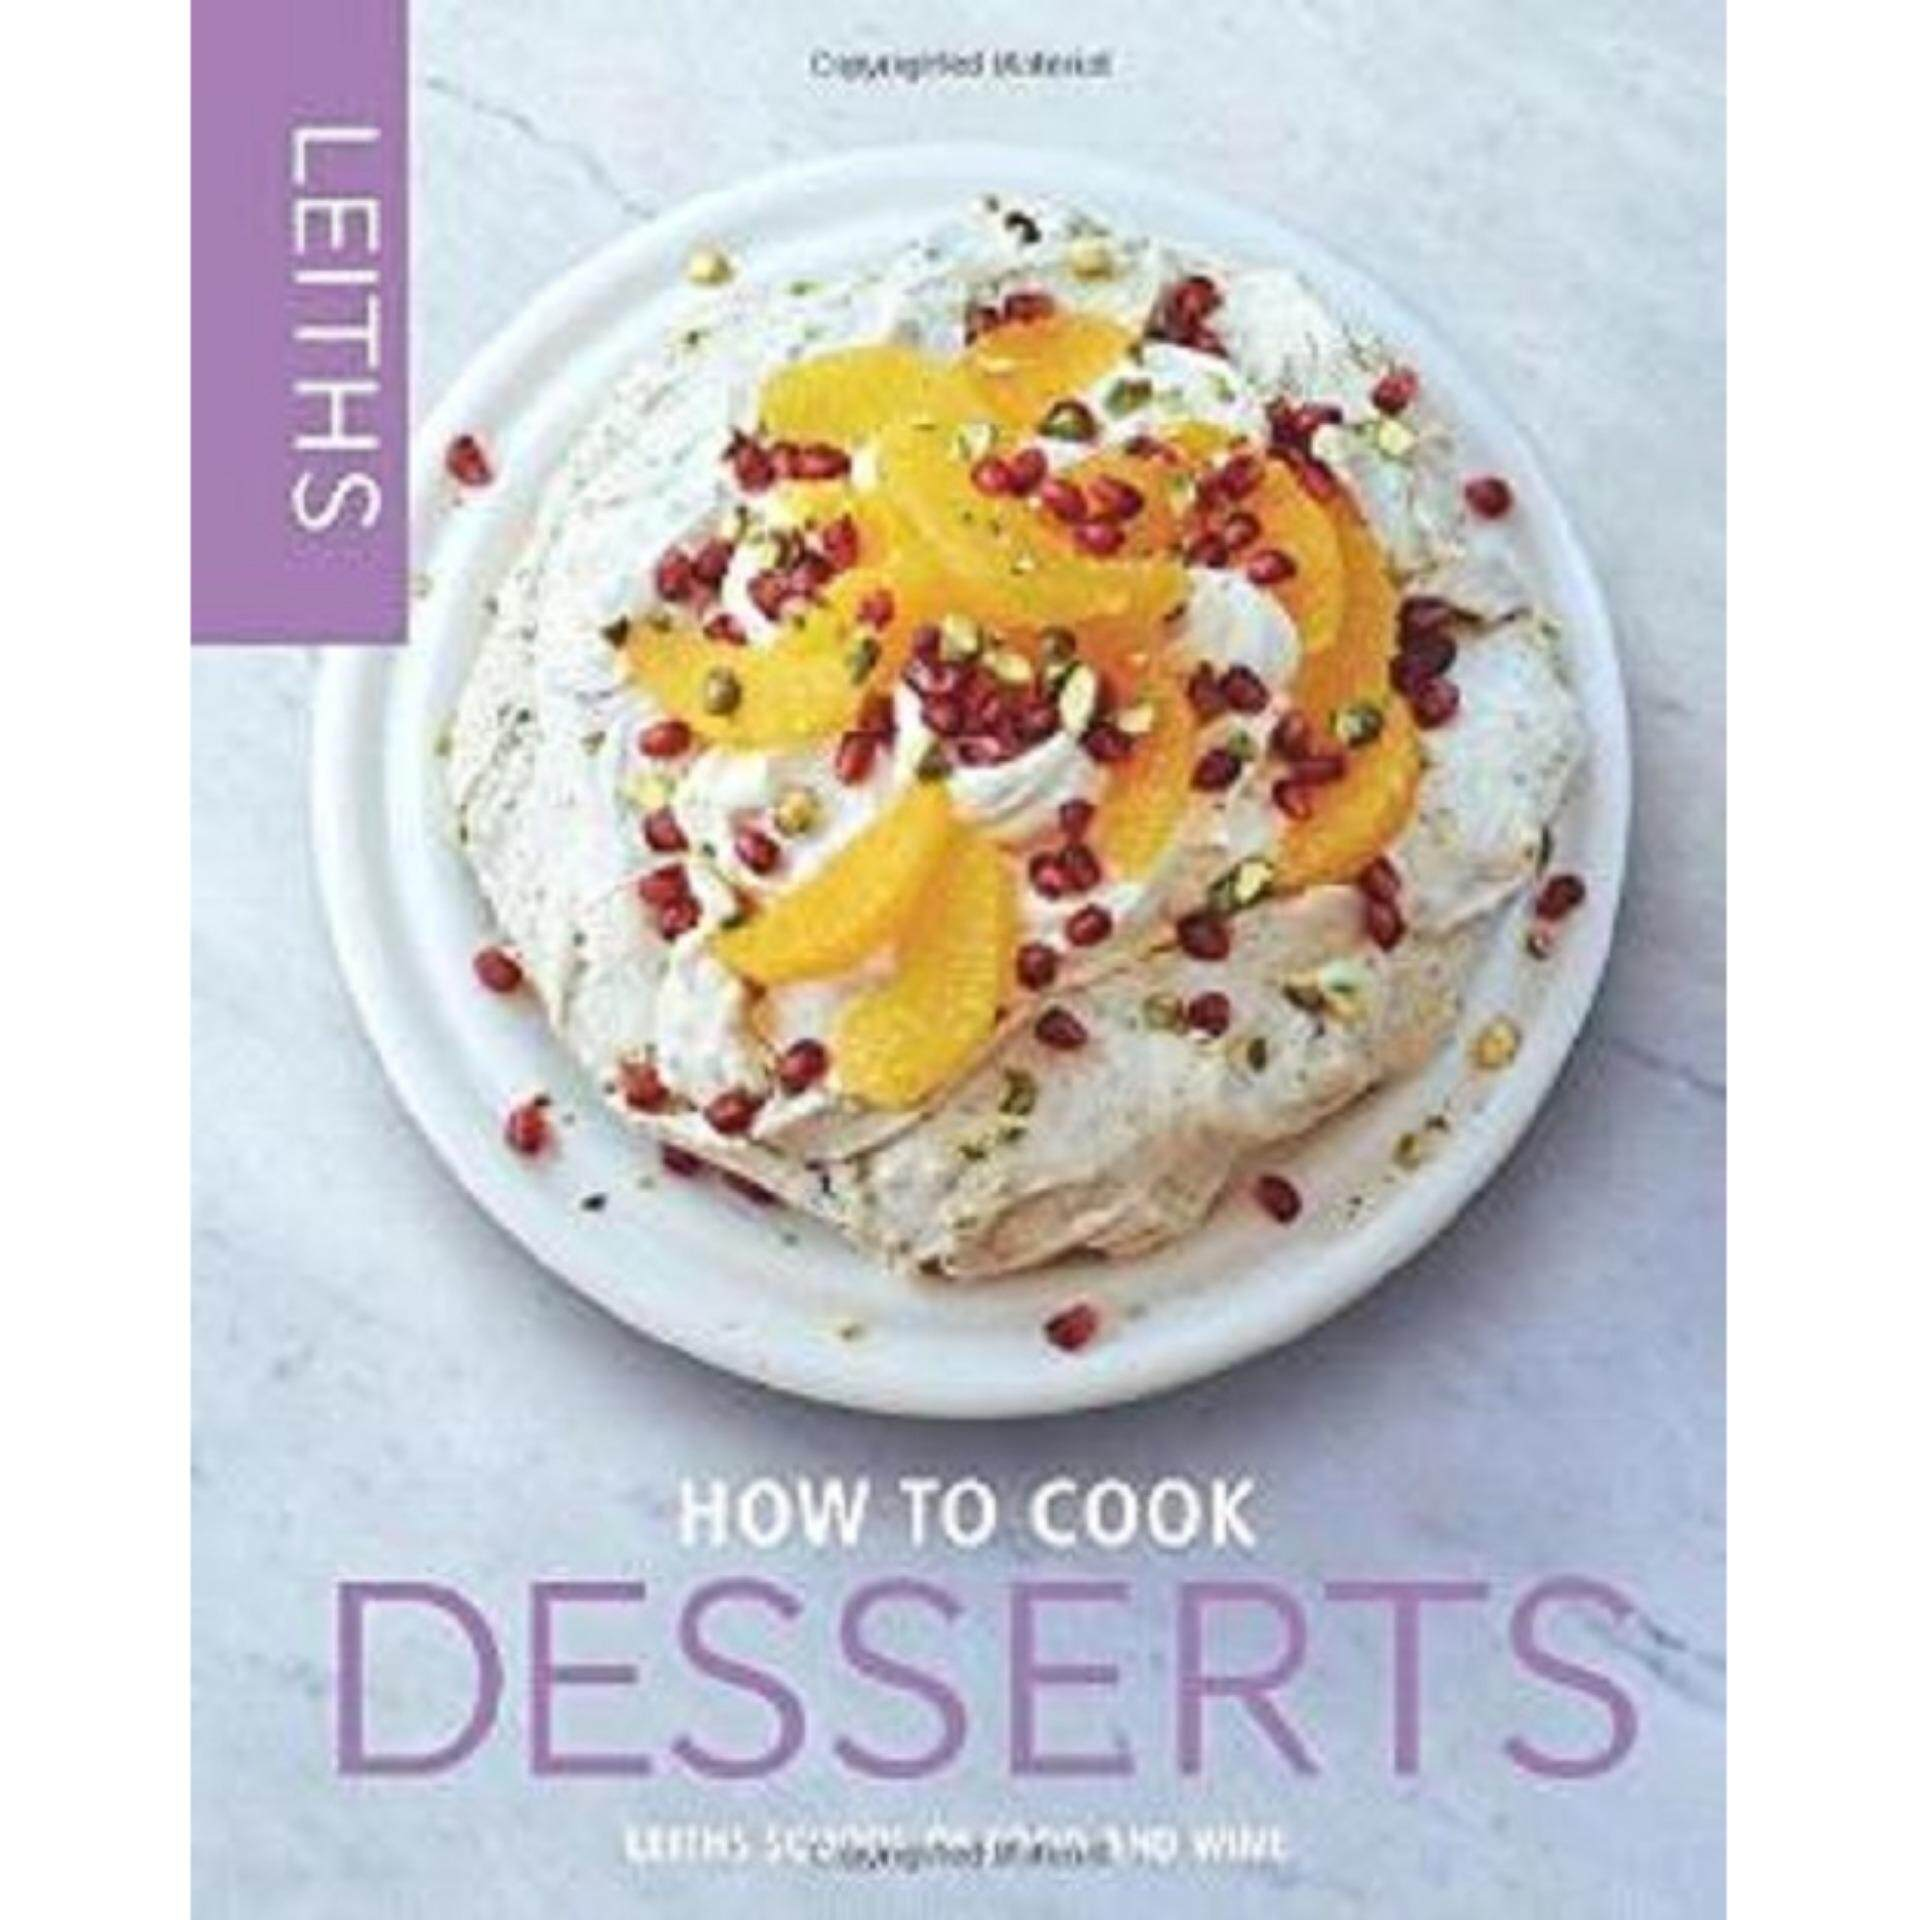 How To Cook Desserts  ISBN: 9781849495509 Author By :  Leith's School of Food and Wine